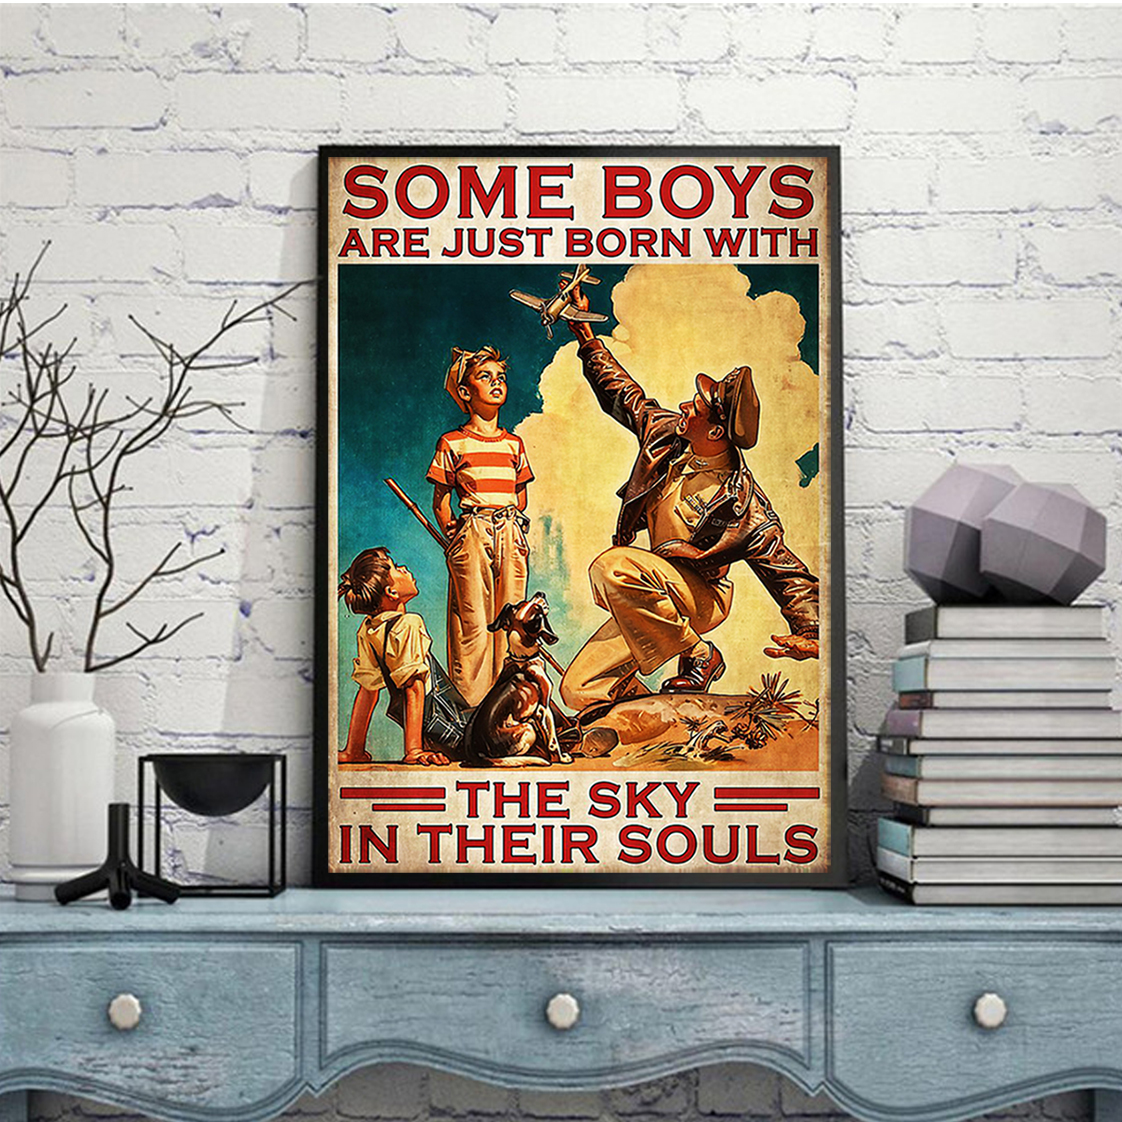 Some boys are just born with the sky in their souls poster A2